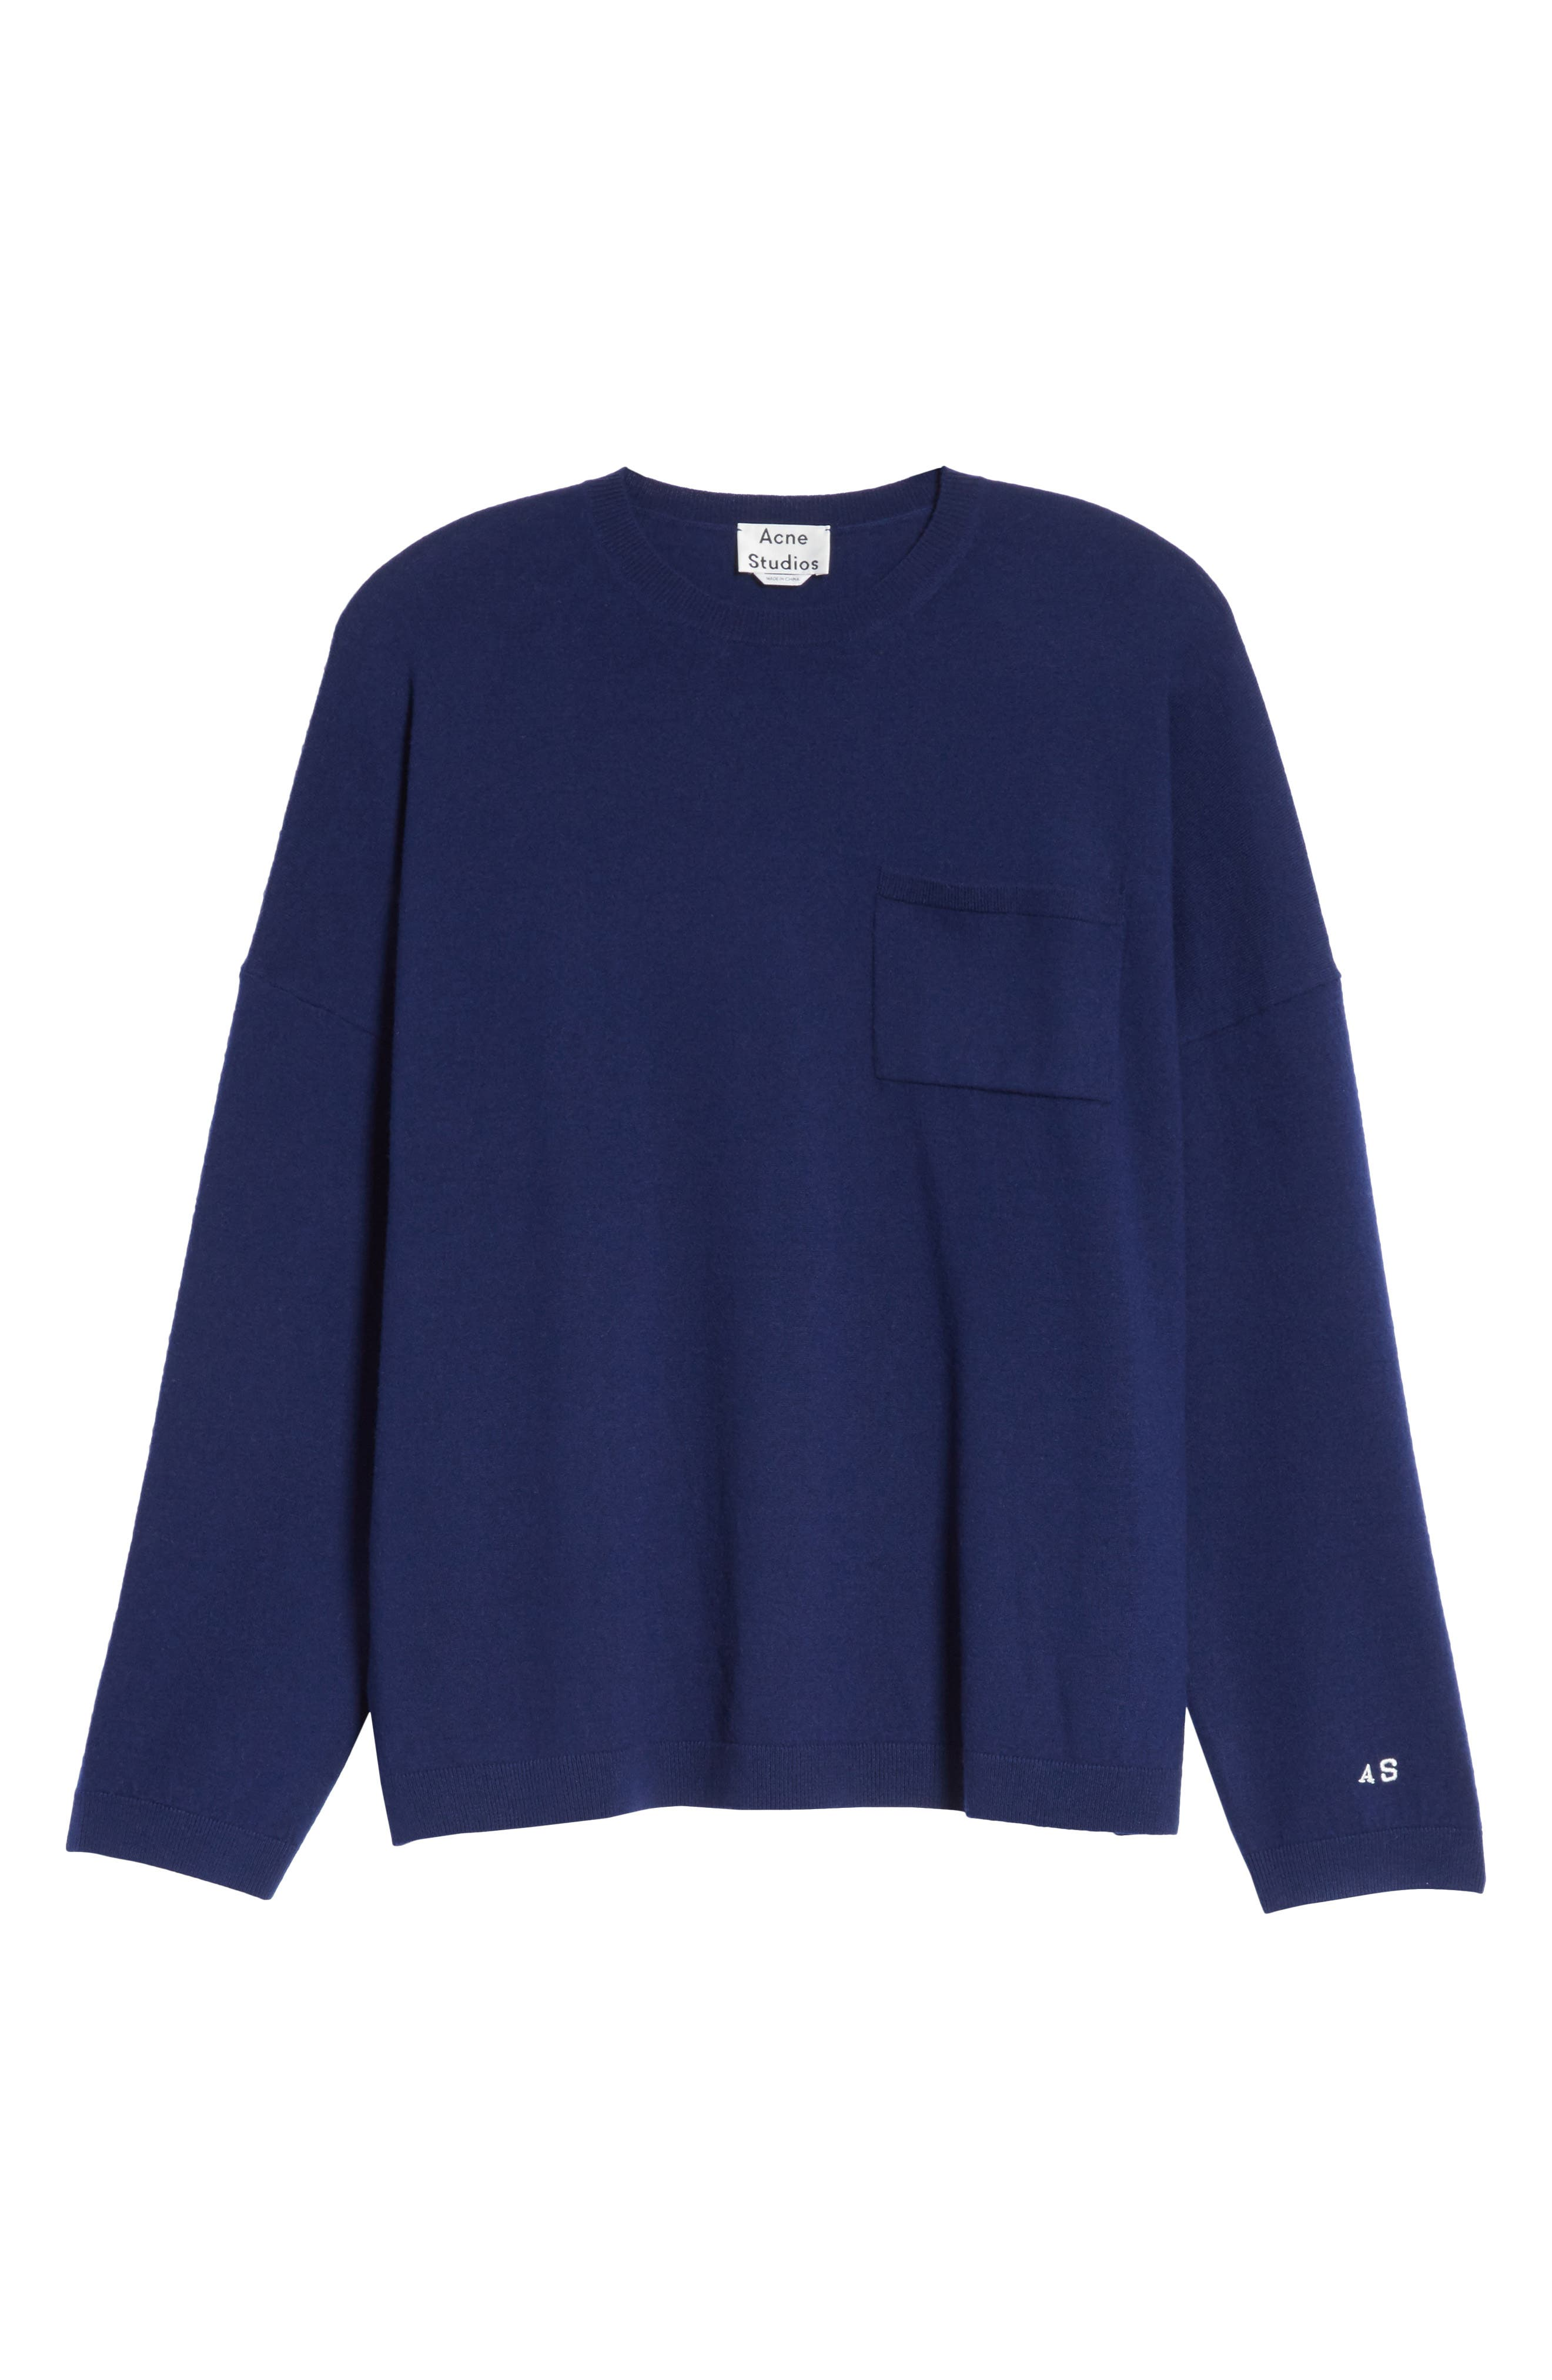 Libby Wool Sweater,                             Alternate thumbnail 6, color,                             Navy